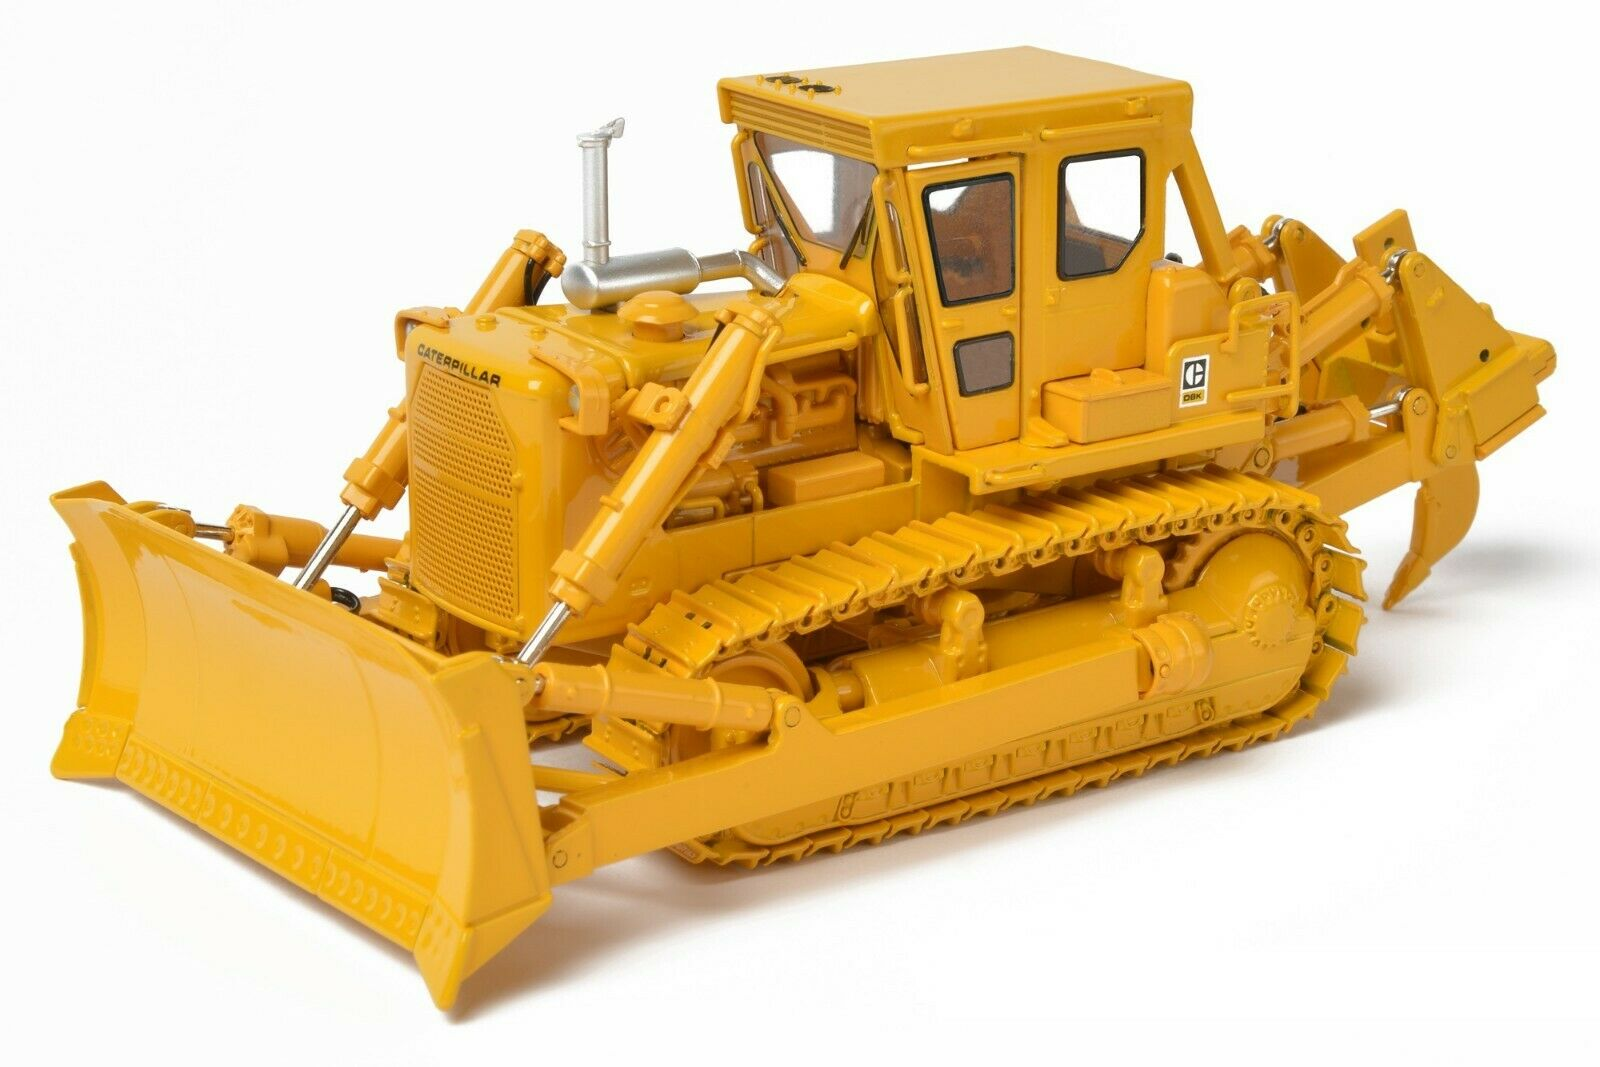 Caterpillar Cat D8K Dozer with S-Blade and Ripper by CCM 1 48 Scale Model New